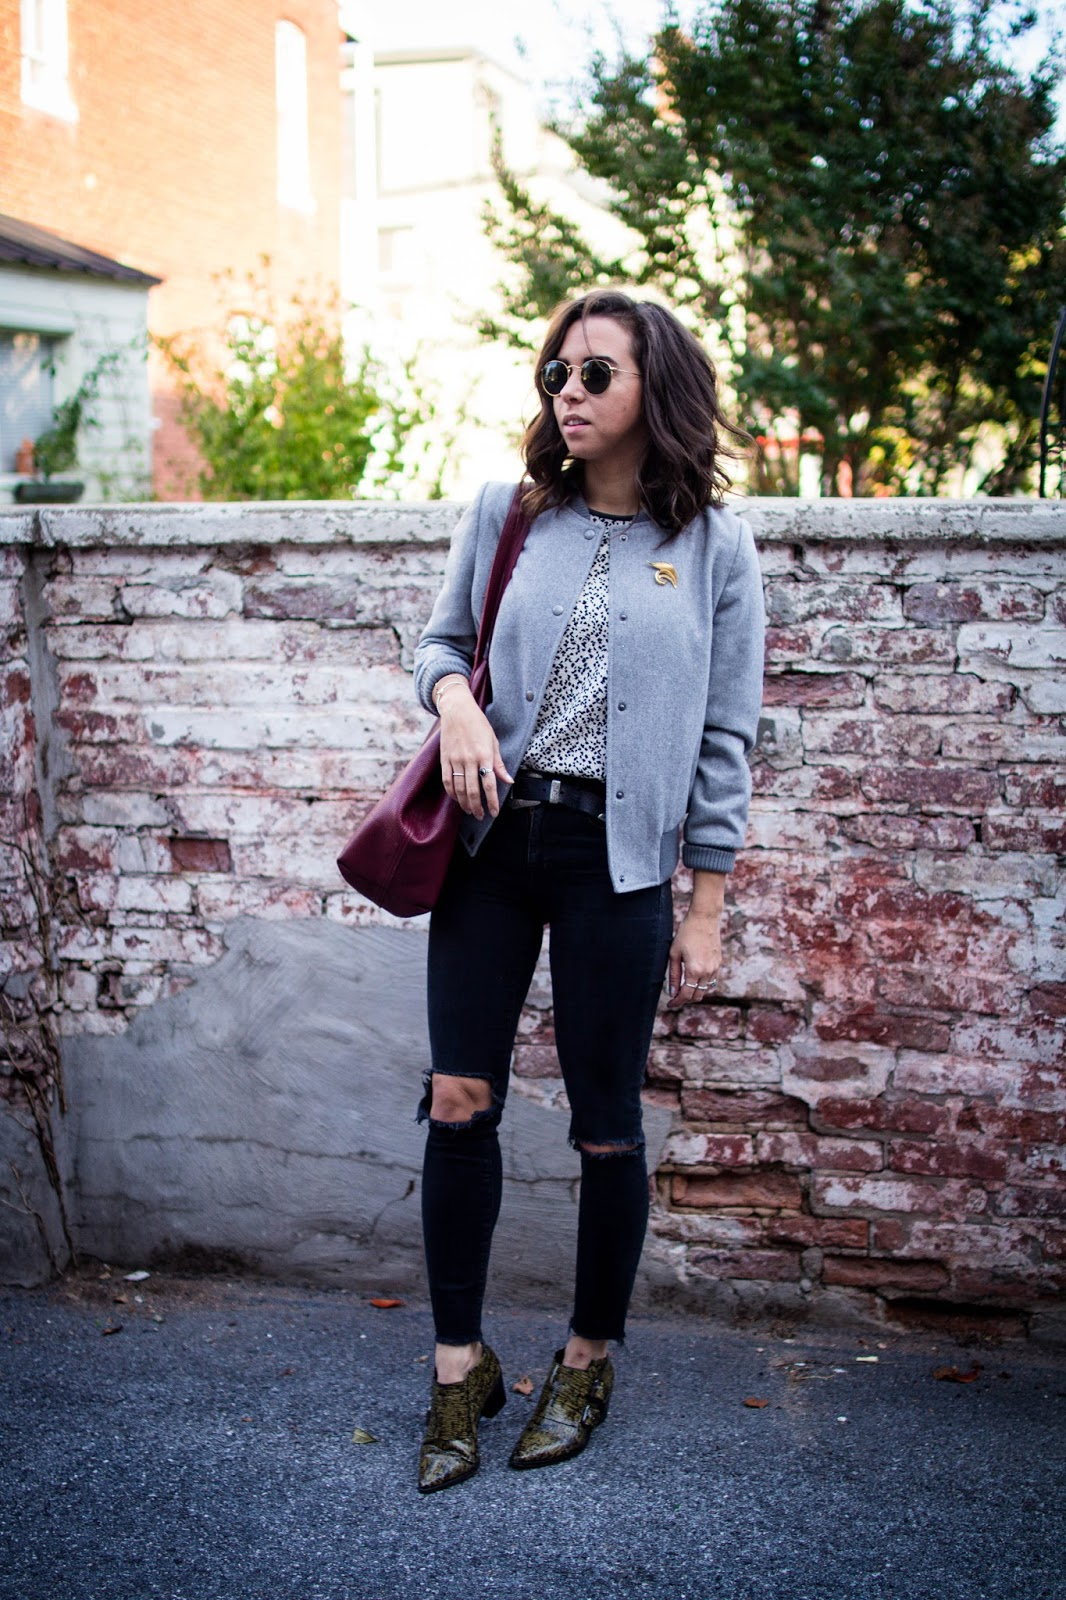 casual outfit of the day with oversized tote.